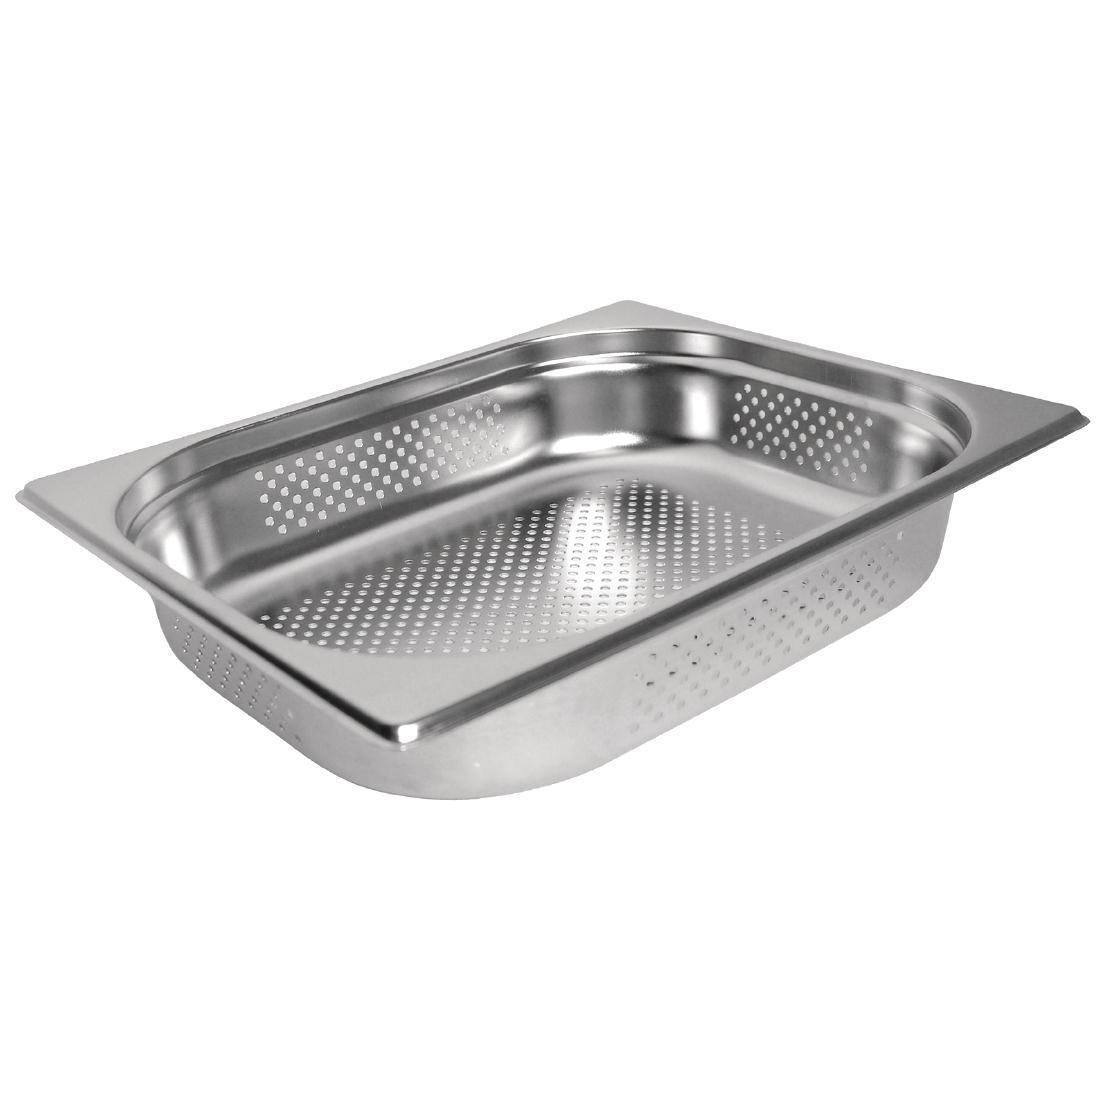 Vogue Stainless Steel Perforated 1/2 Gastronorm Pan 150mm - K846